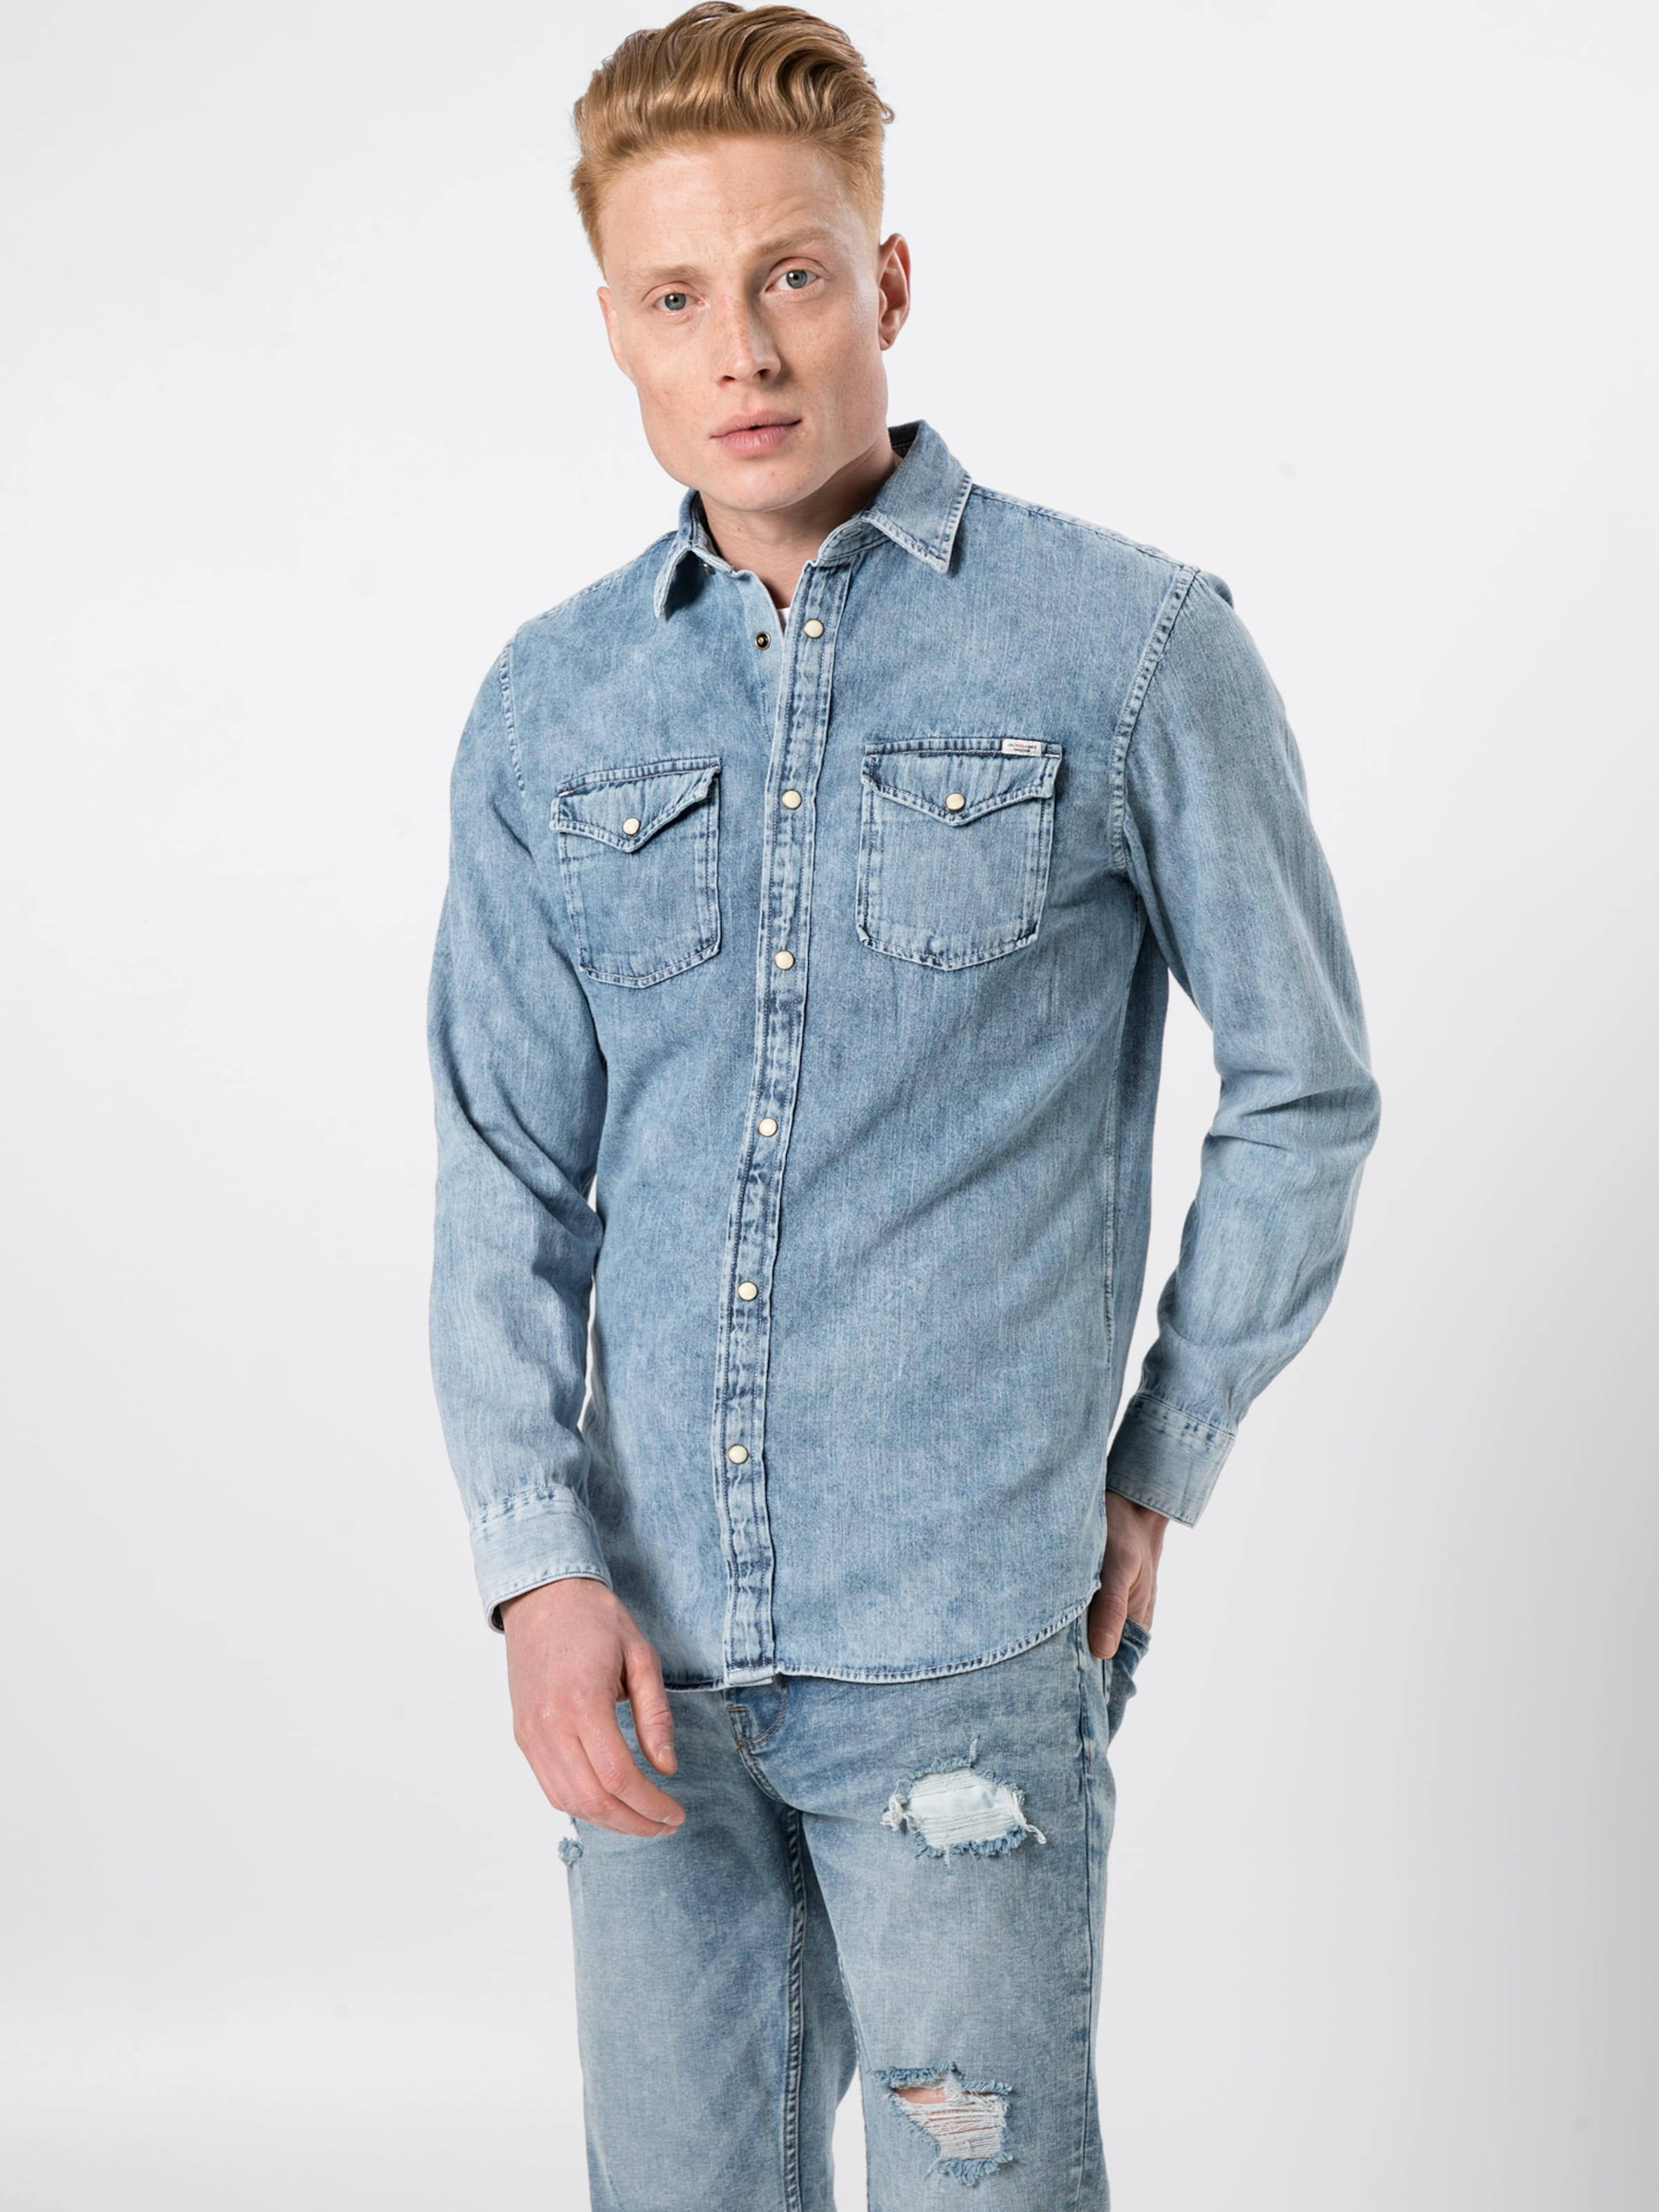 Jackamp; Denim Bleu Jones 'jjesheridan Shirt L s' Chemise En Pw0knO